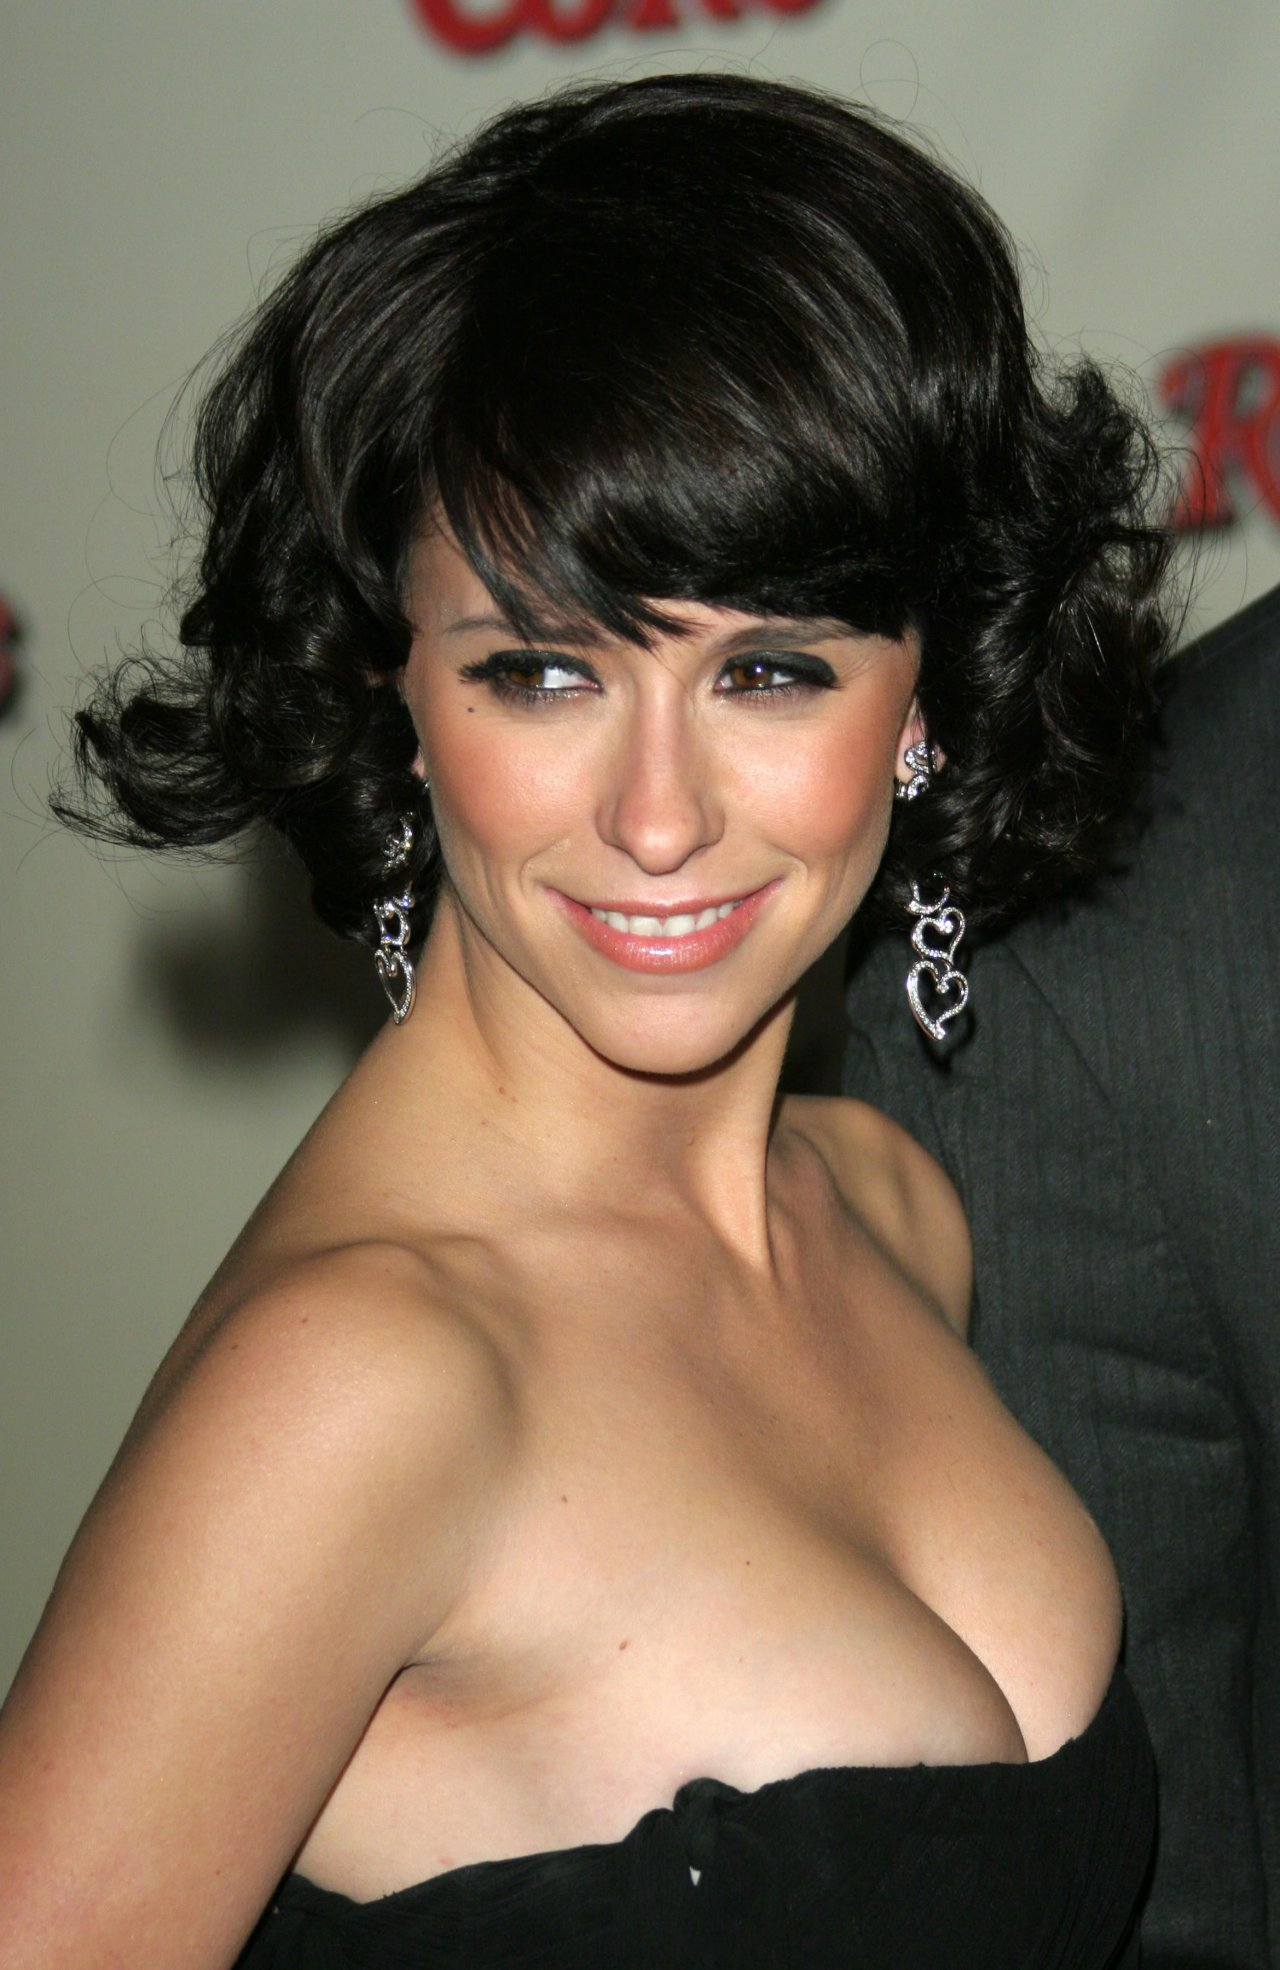 http://dollyumez.files.wordpress.com/2013/03/jennifer-love-hewitt.jpg